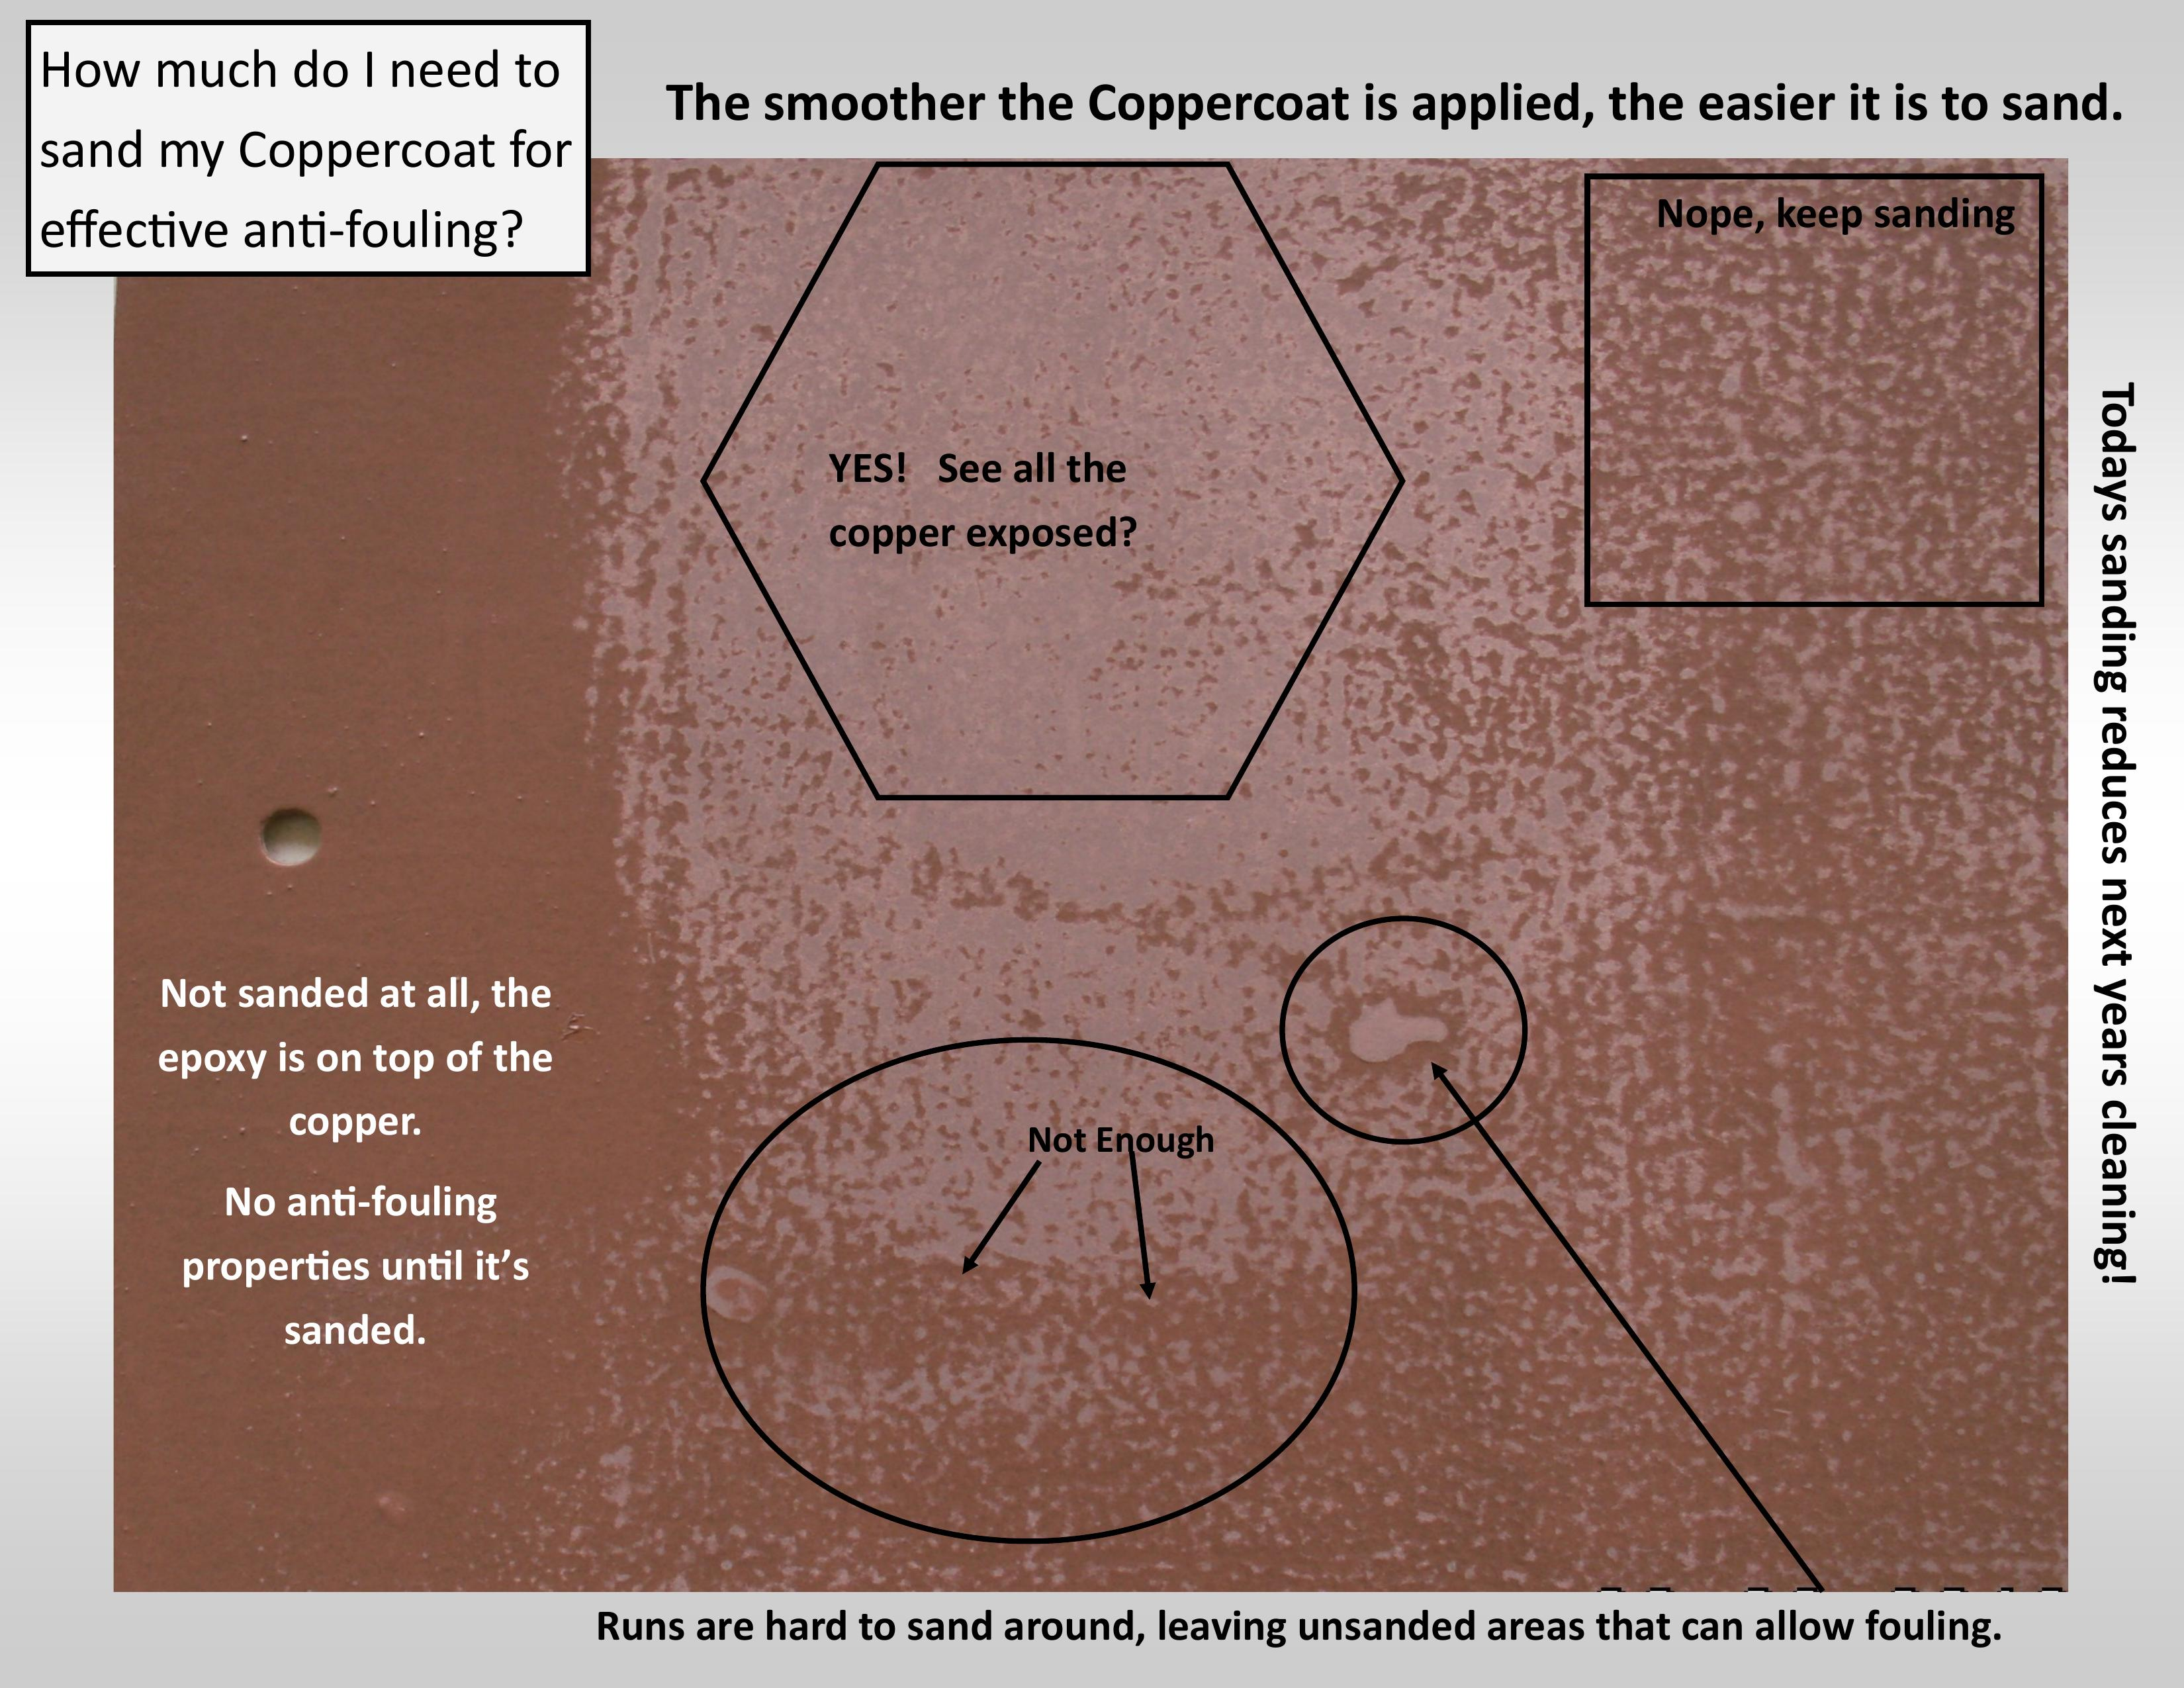 Coppercoat Application Information - Coppercoat anti-fouling epoxy ...